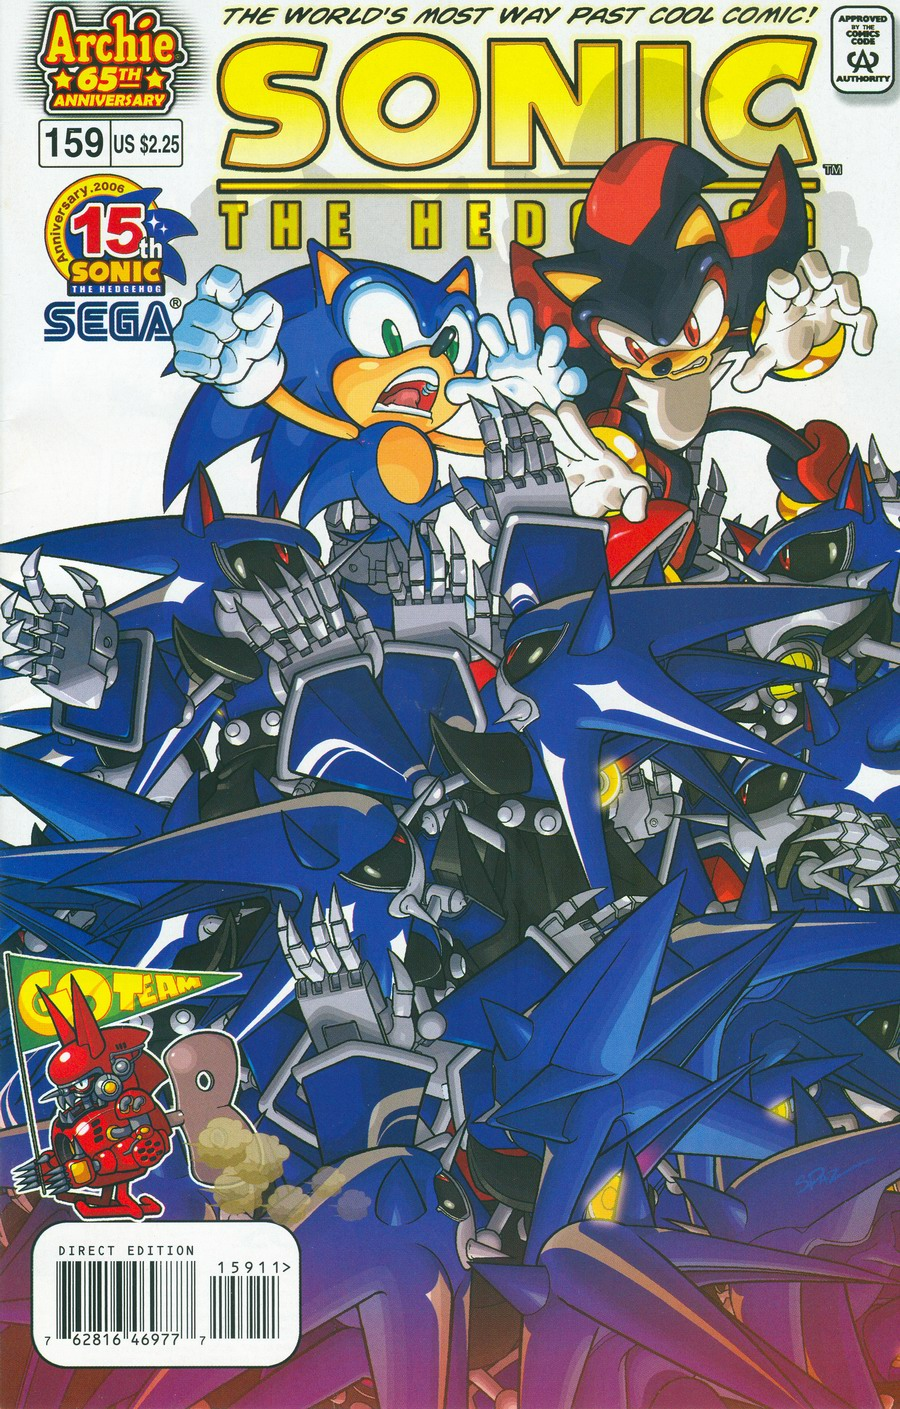 Sonic - Archie Adventure Series April 2006 Comic cover page